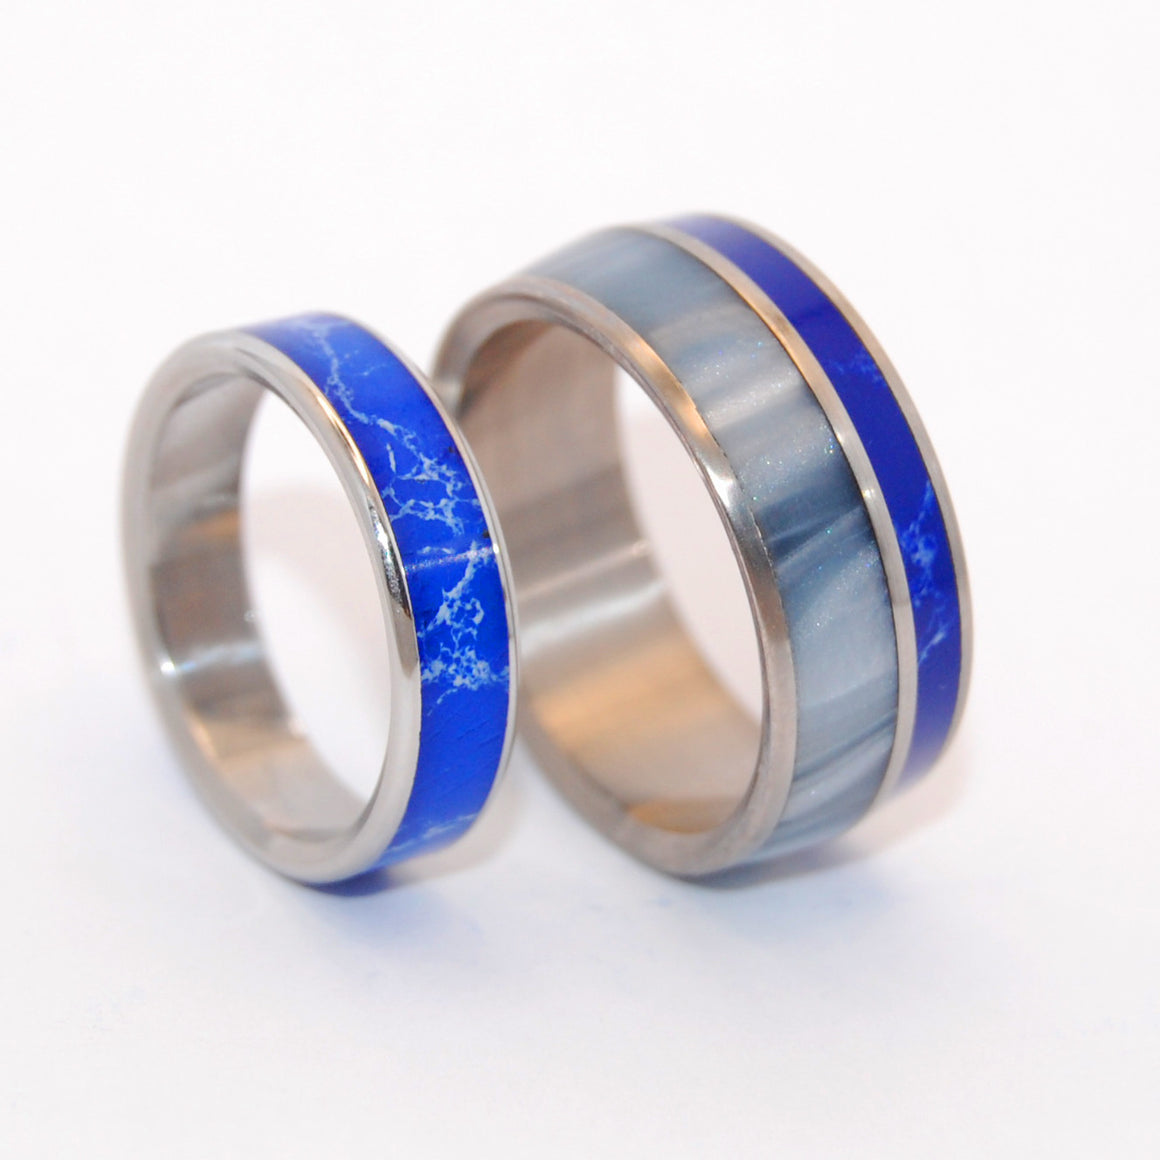 We'll Always Be Where Blue Stars Shine | Stone and Titanium Wedding Ring Set - Minter and Richter Designs